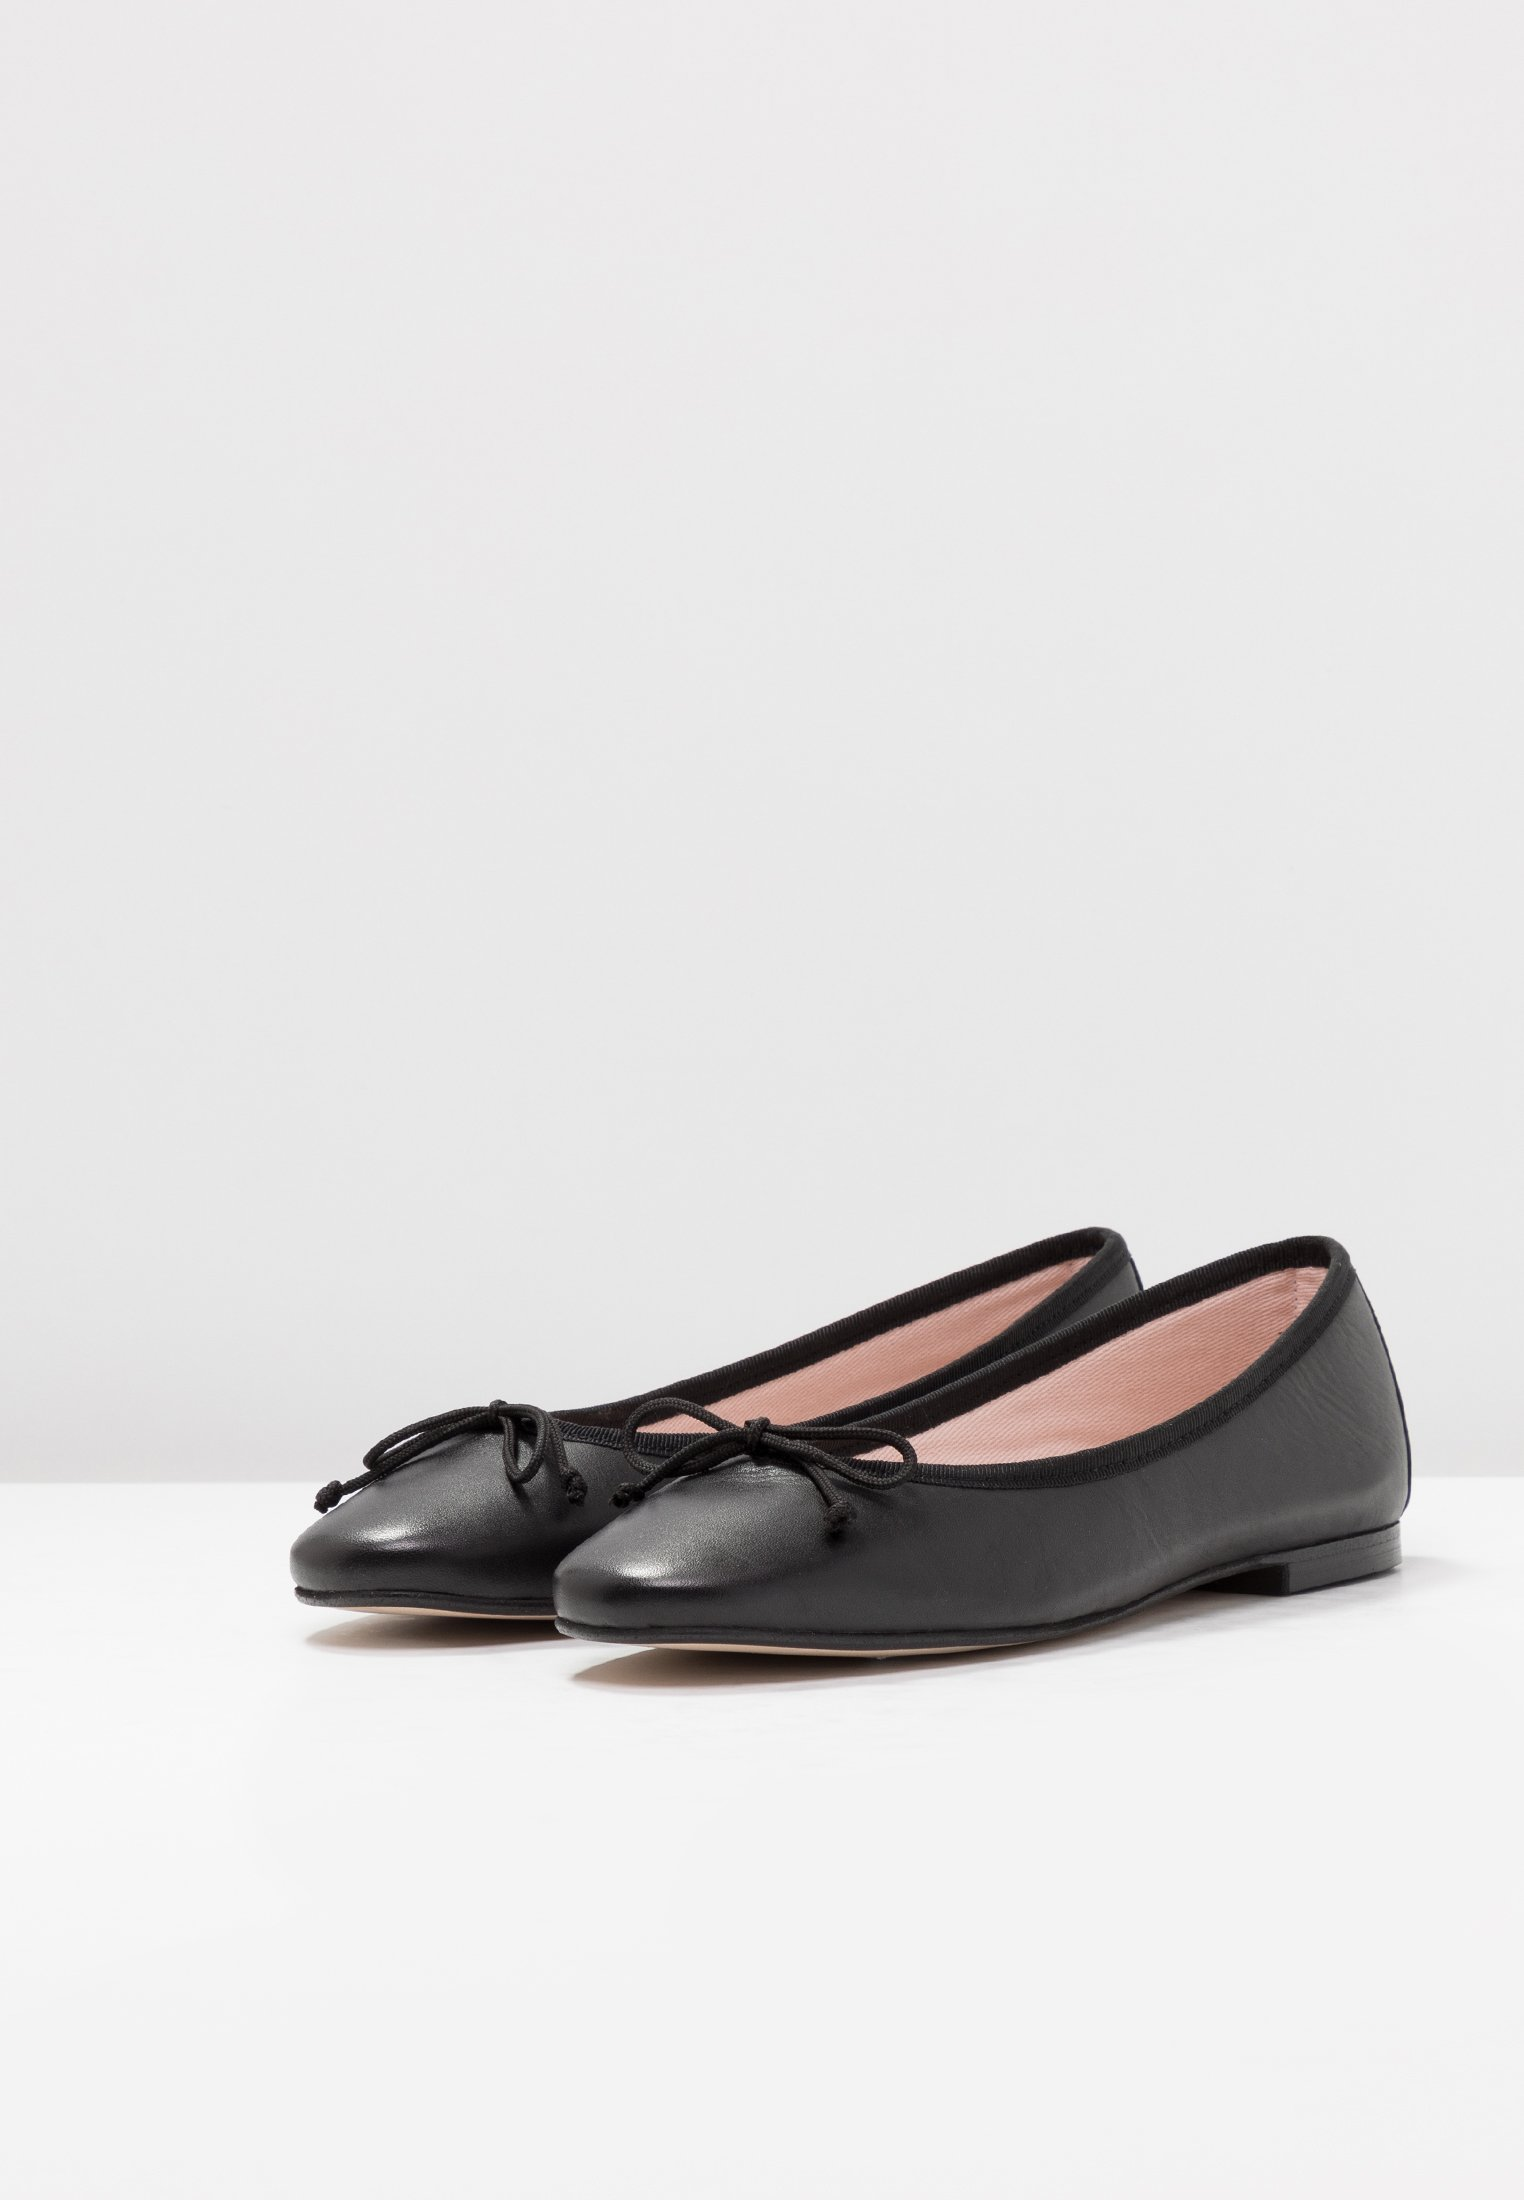 mint&berry Ballet pumps - black